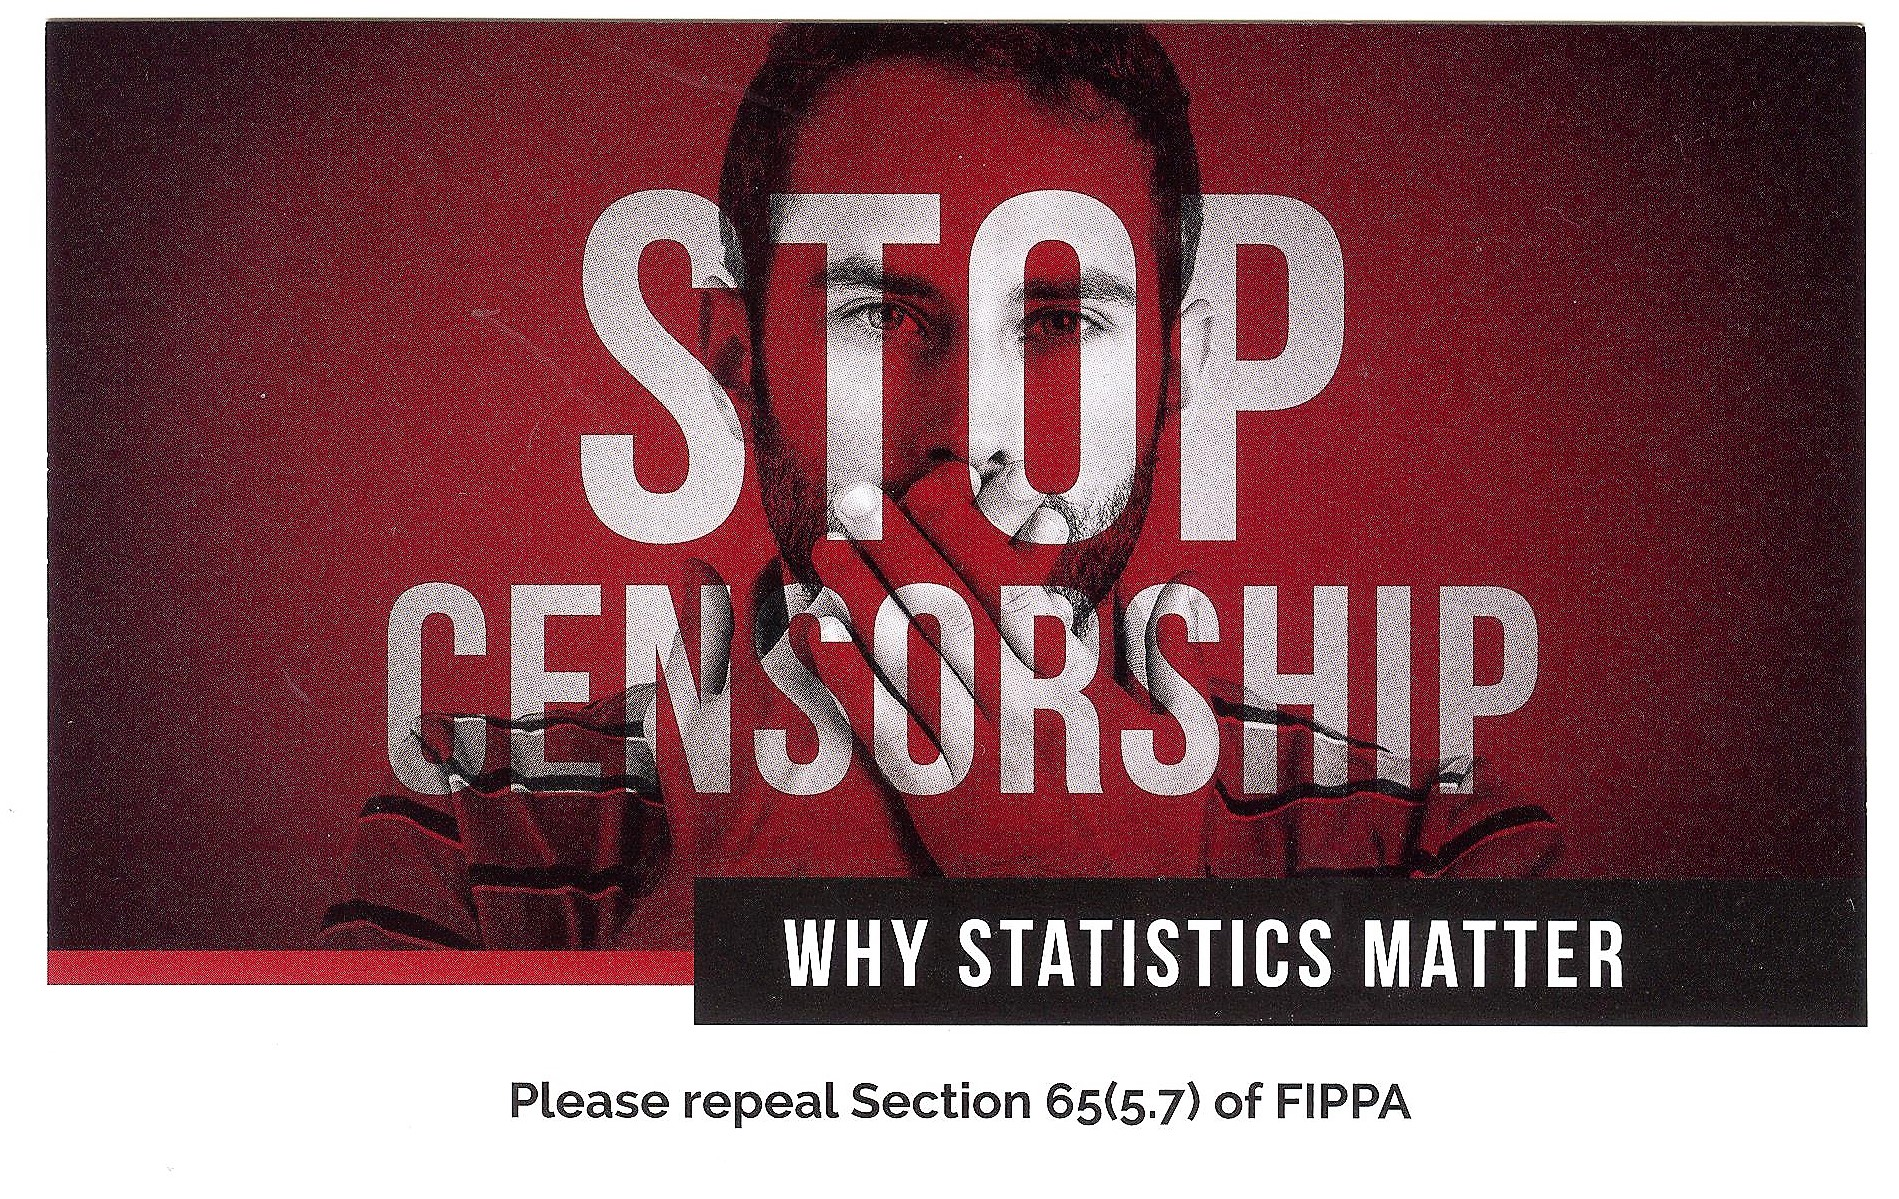 Repeal Section 65(5.7) of FIPPA 001